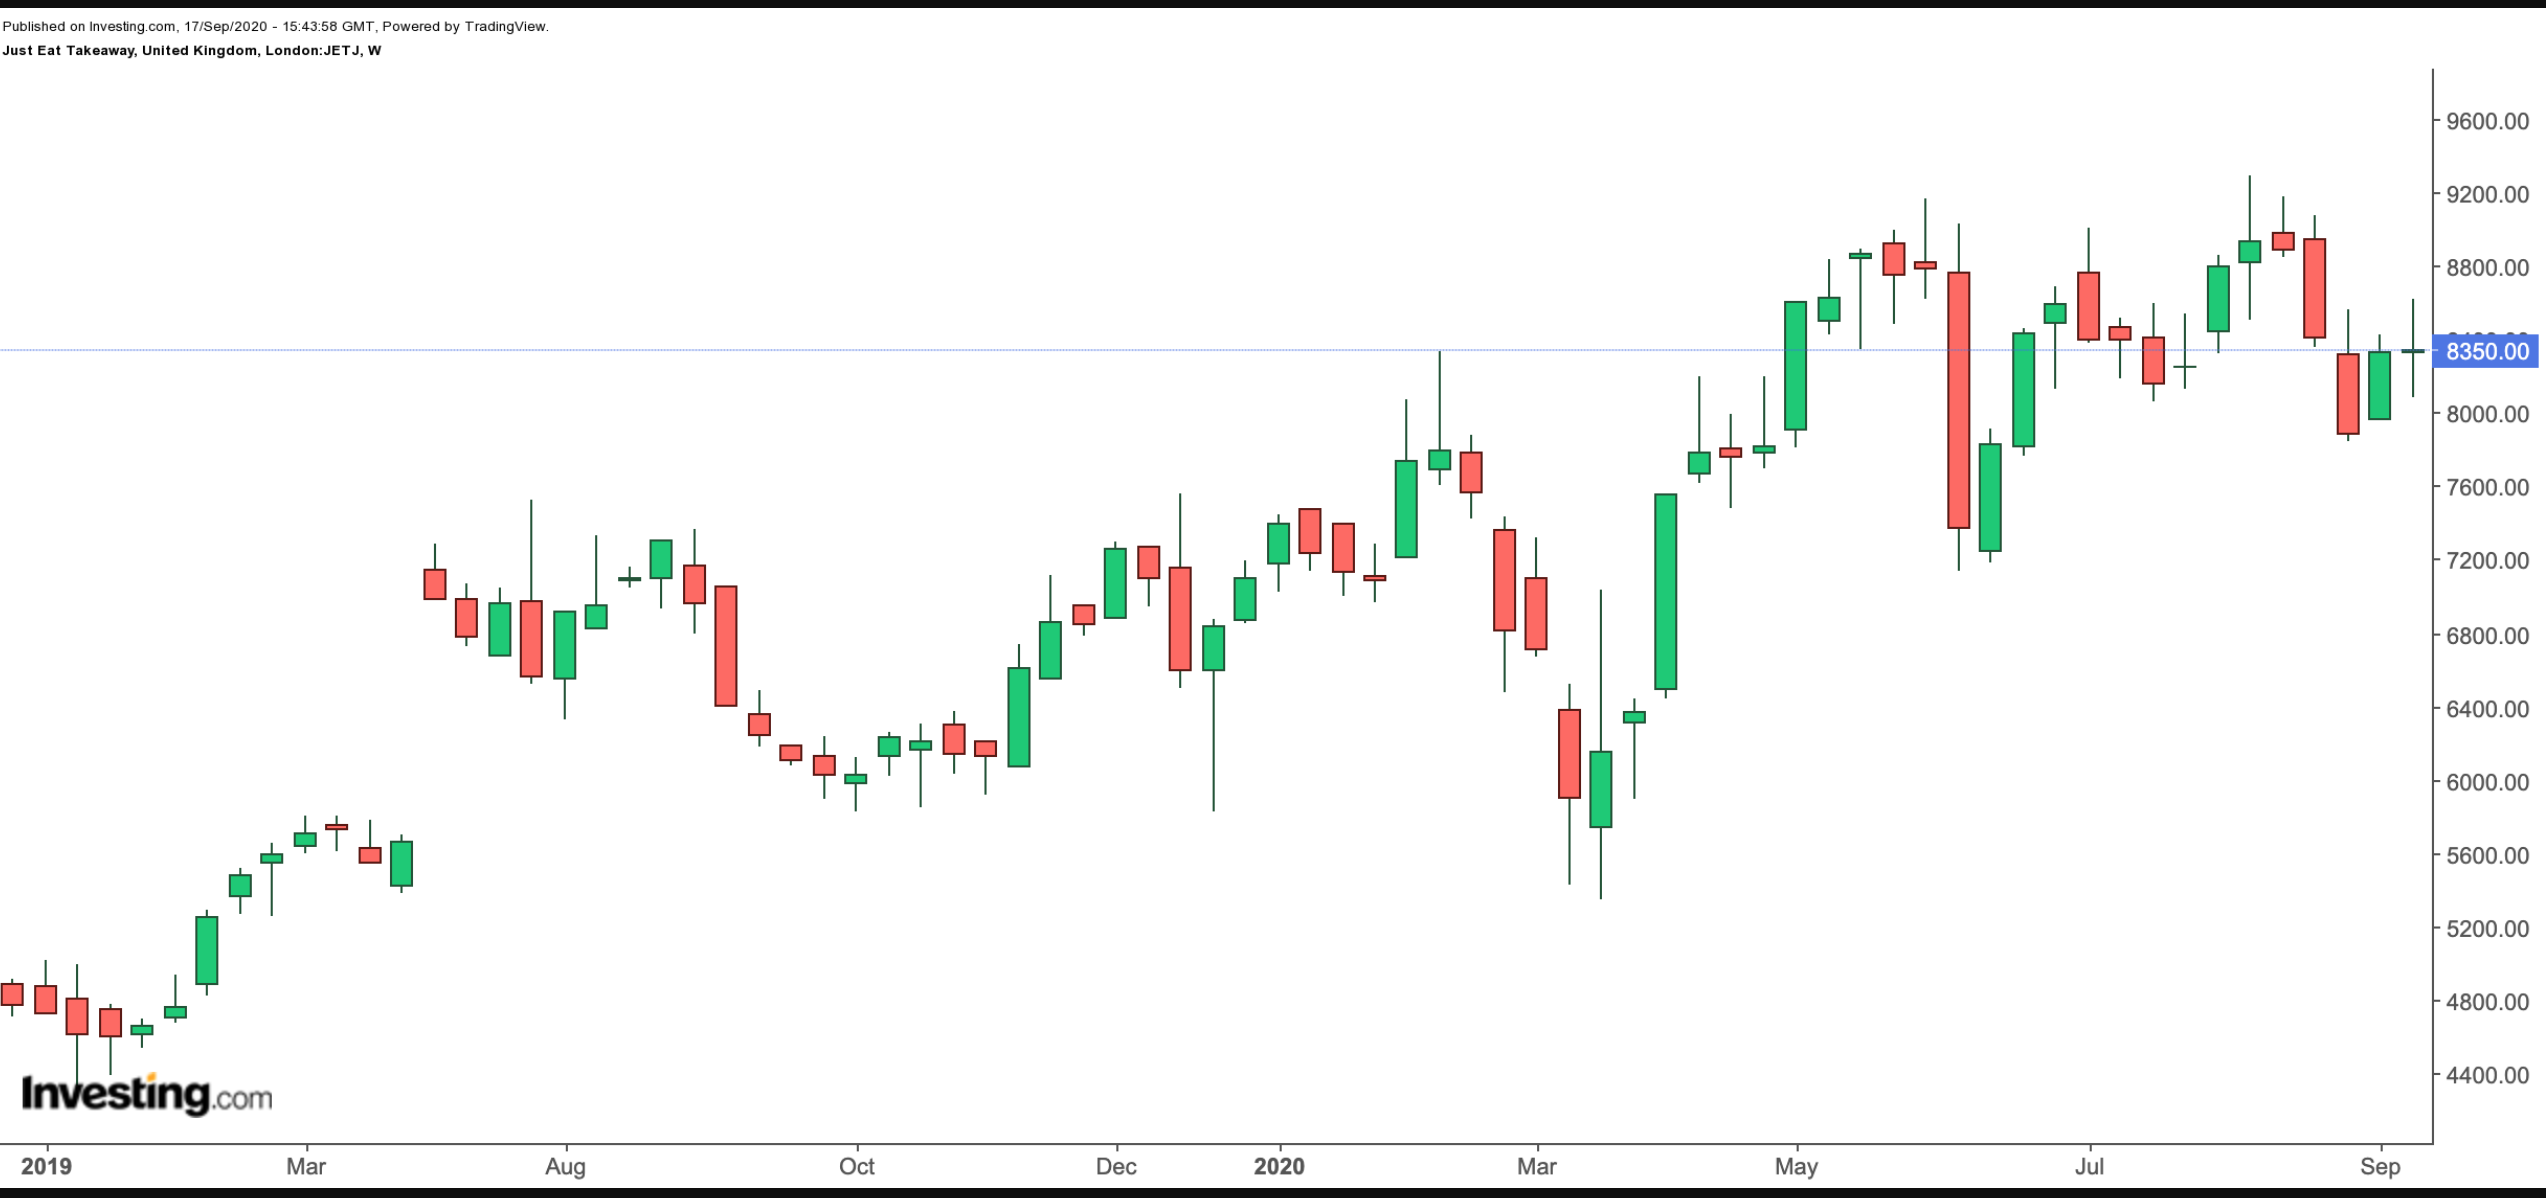 Just Eat Takeaway 18-Month Chart.